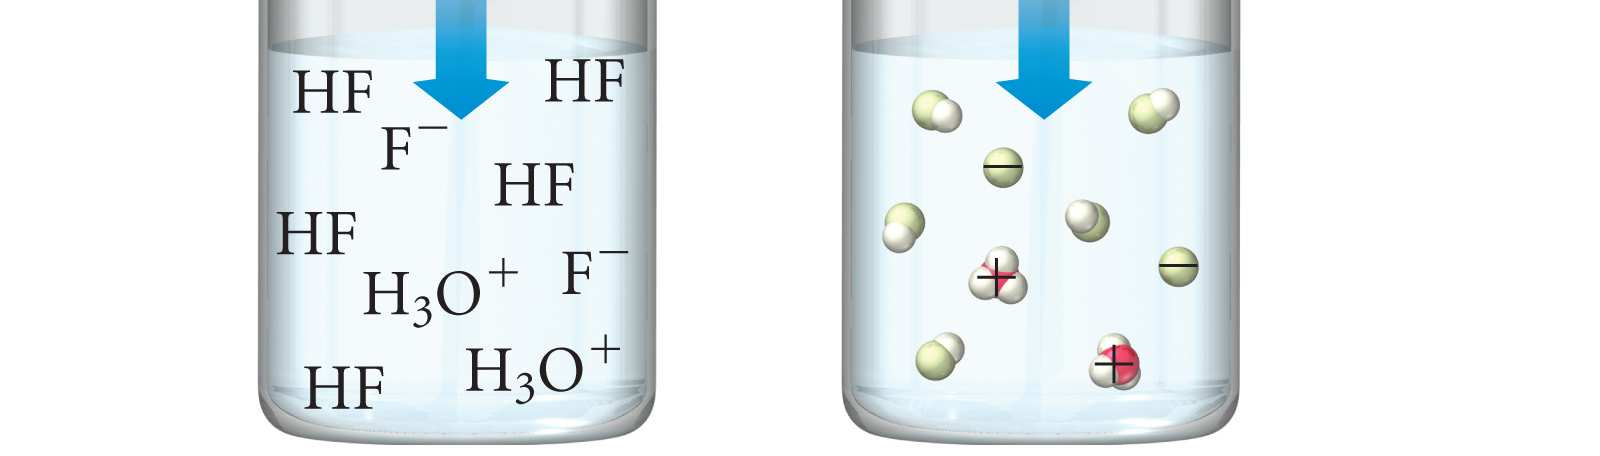 HCl (aq) + H 2 O (l) H 3 O + (aq) + Cl - (aq) Acetate is a stronger base than H 2 O, so the equilibrium favors the left side (K<1).